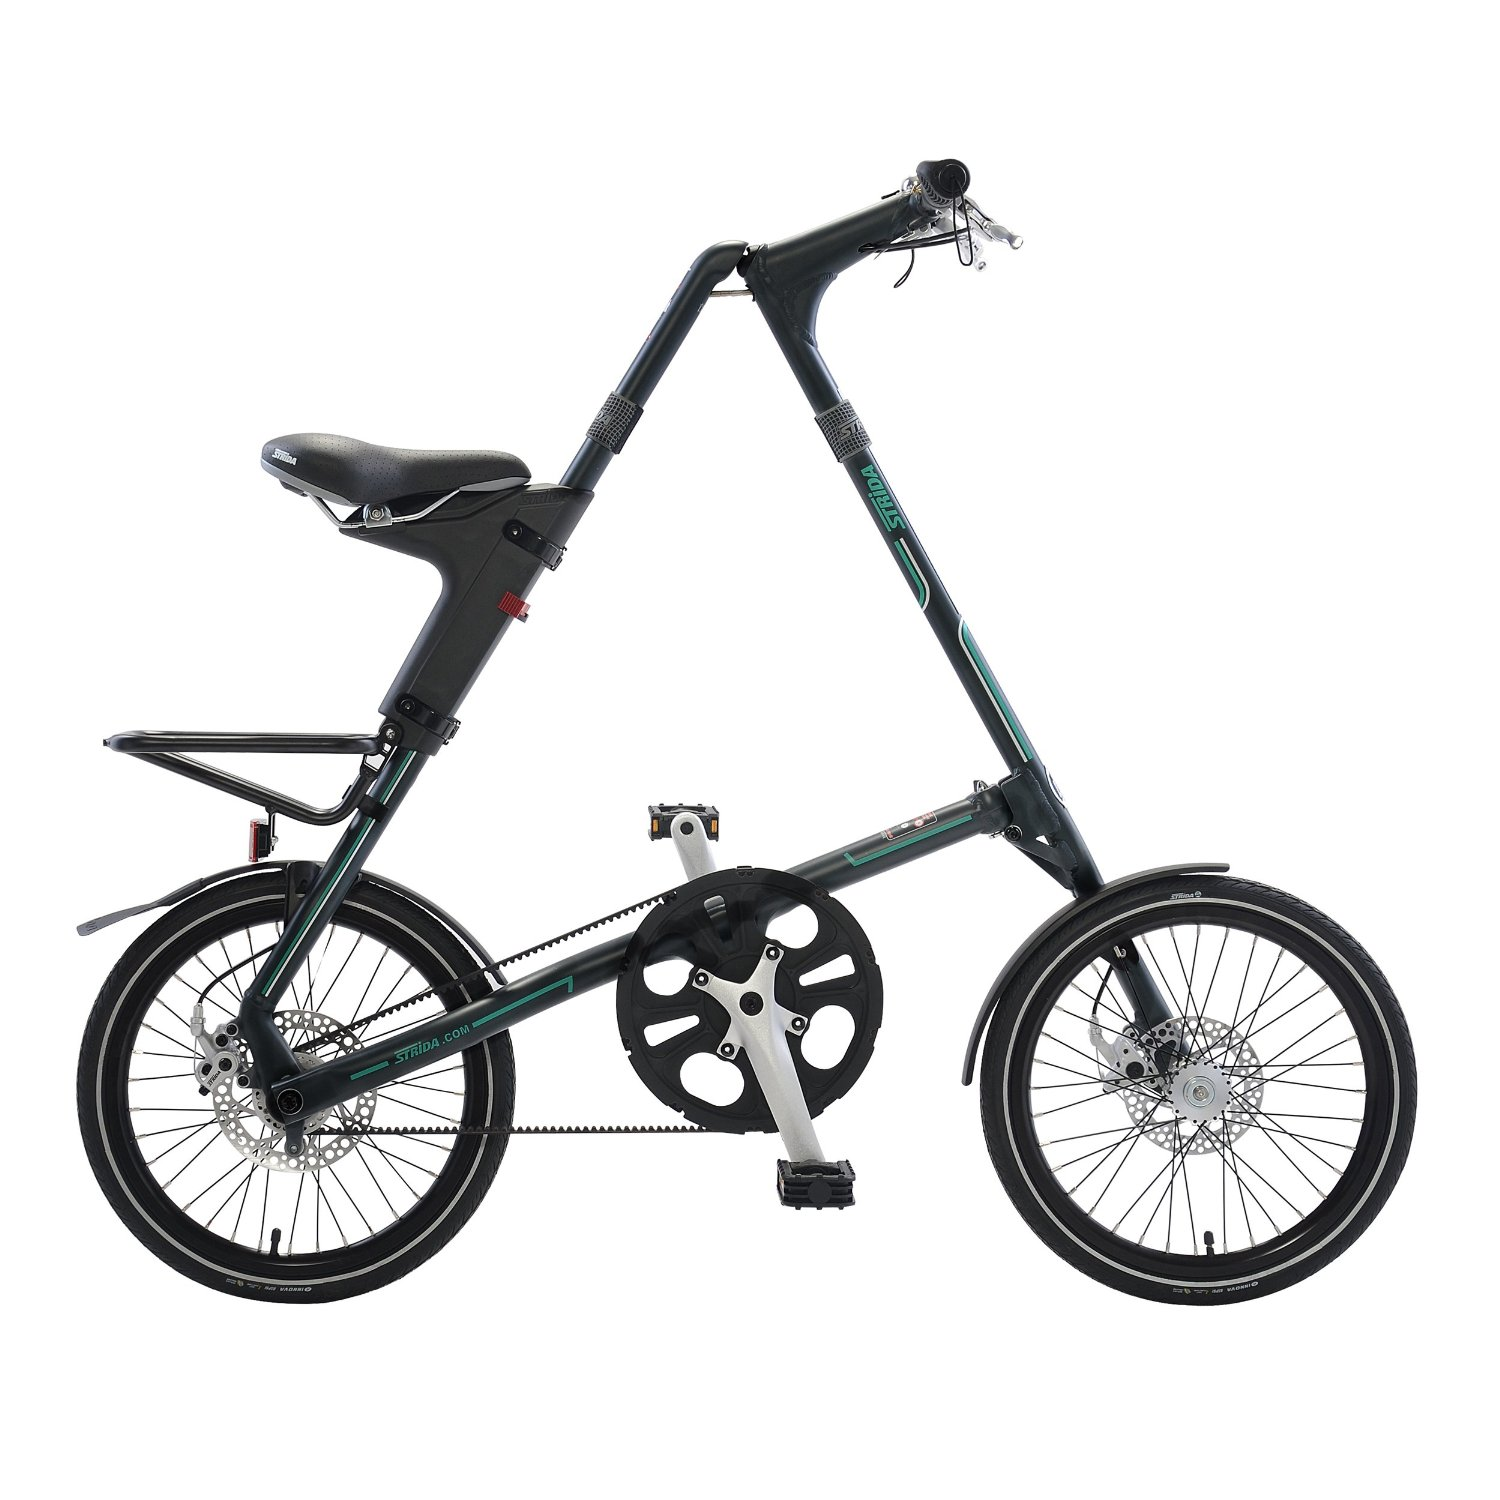 STRiDA SX Review